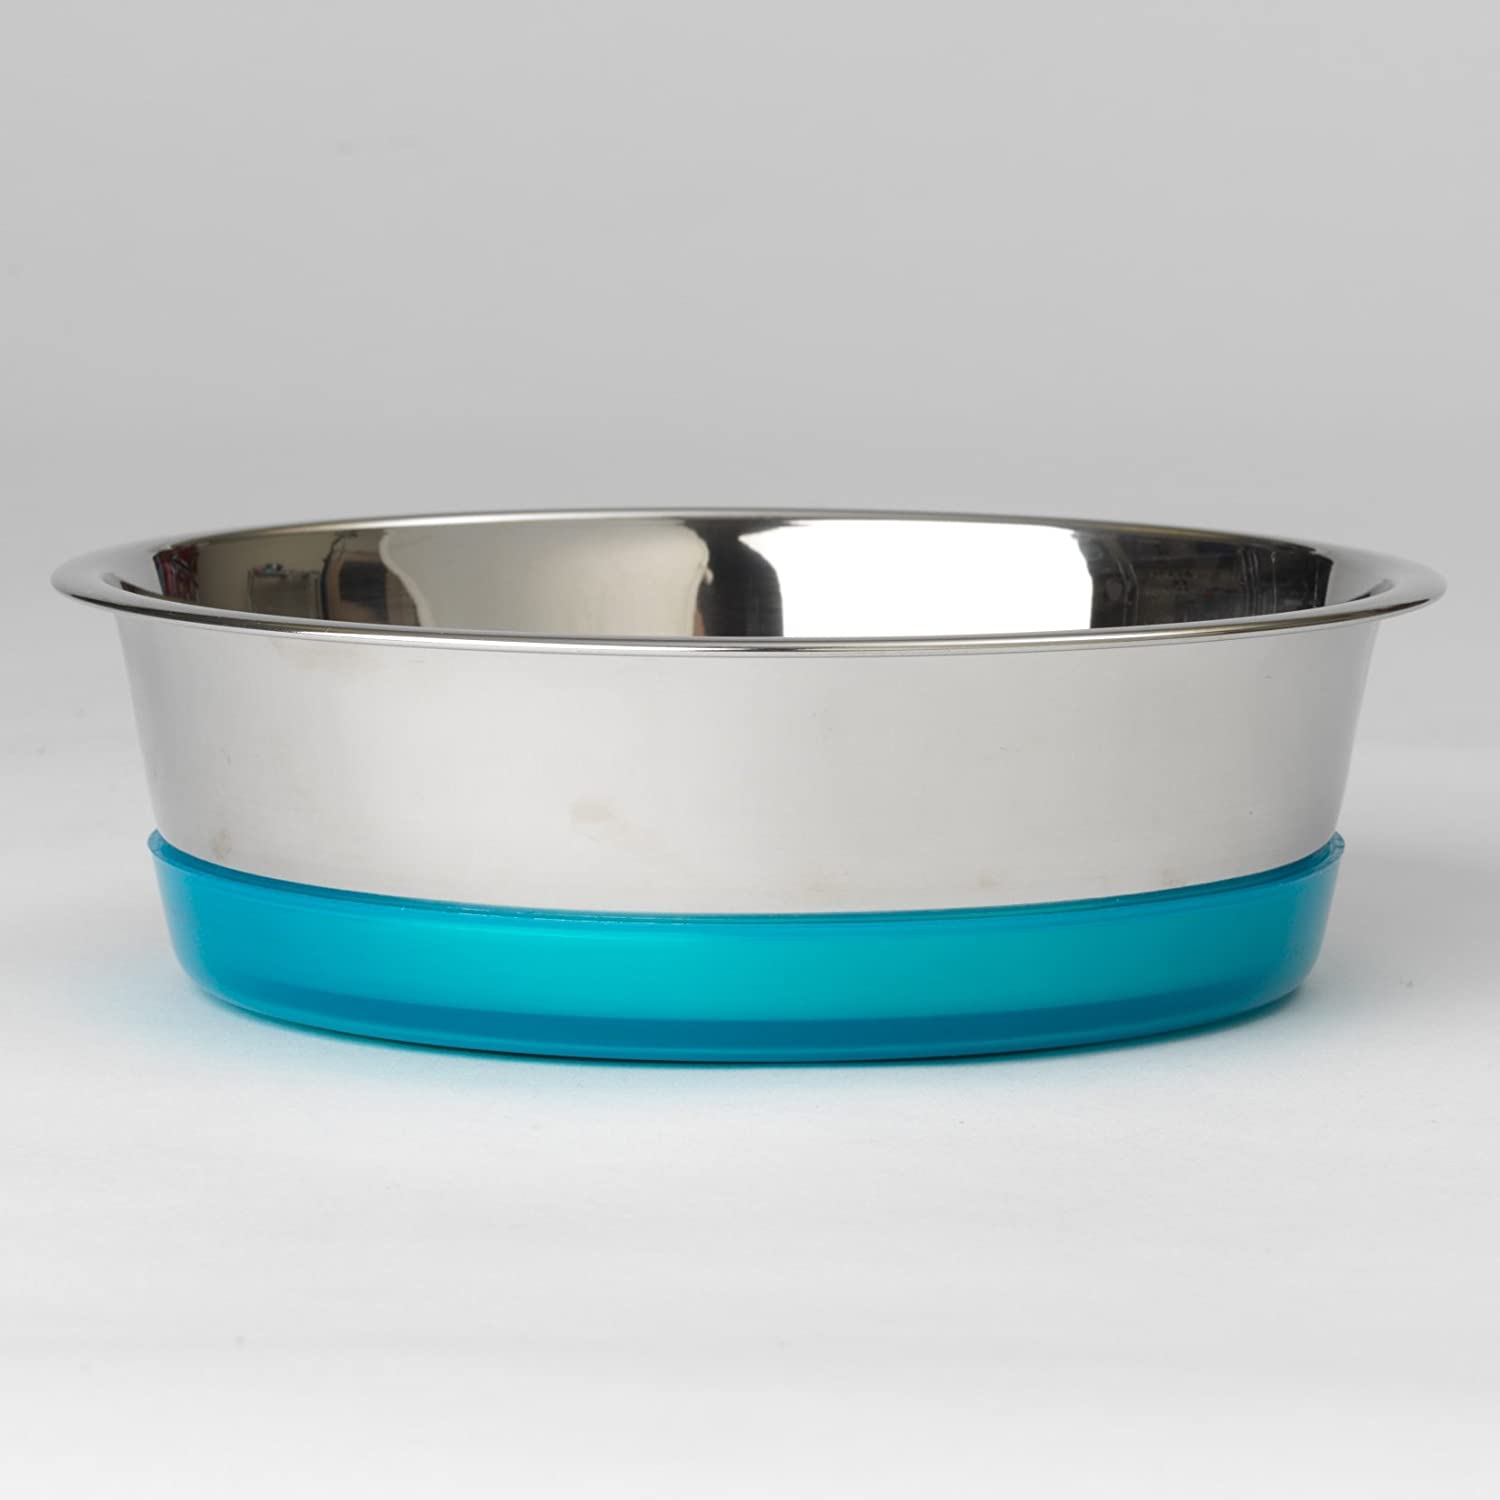 PetRageous 15005 Maui Non-Skid Stainless-Steel Dishwasher Safe Bowl 6.5-Cup Capacity 8.28-Inch Diameter 2.5-Inch Tall for Large and Extra Large Dogs, Translucent Aqua, 8.28